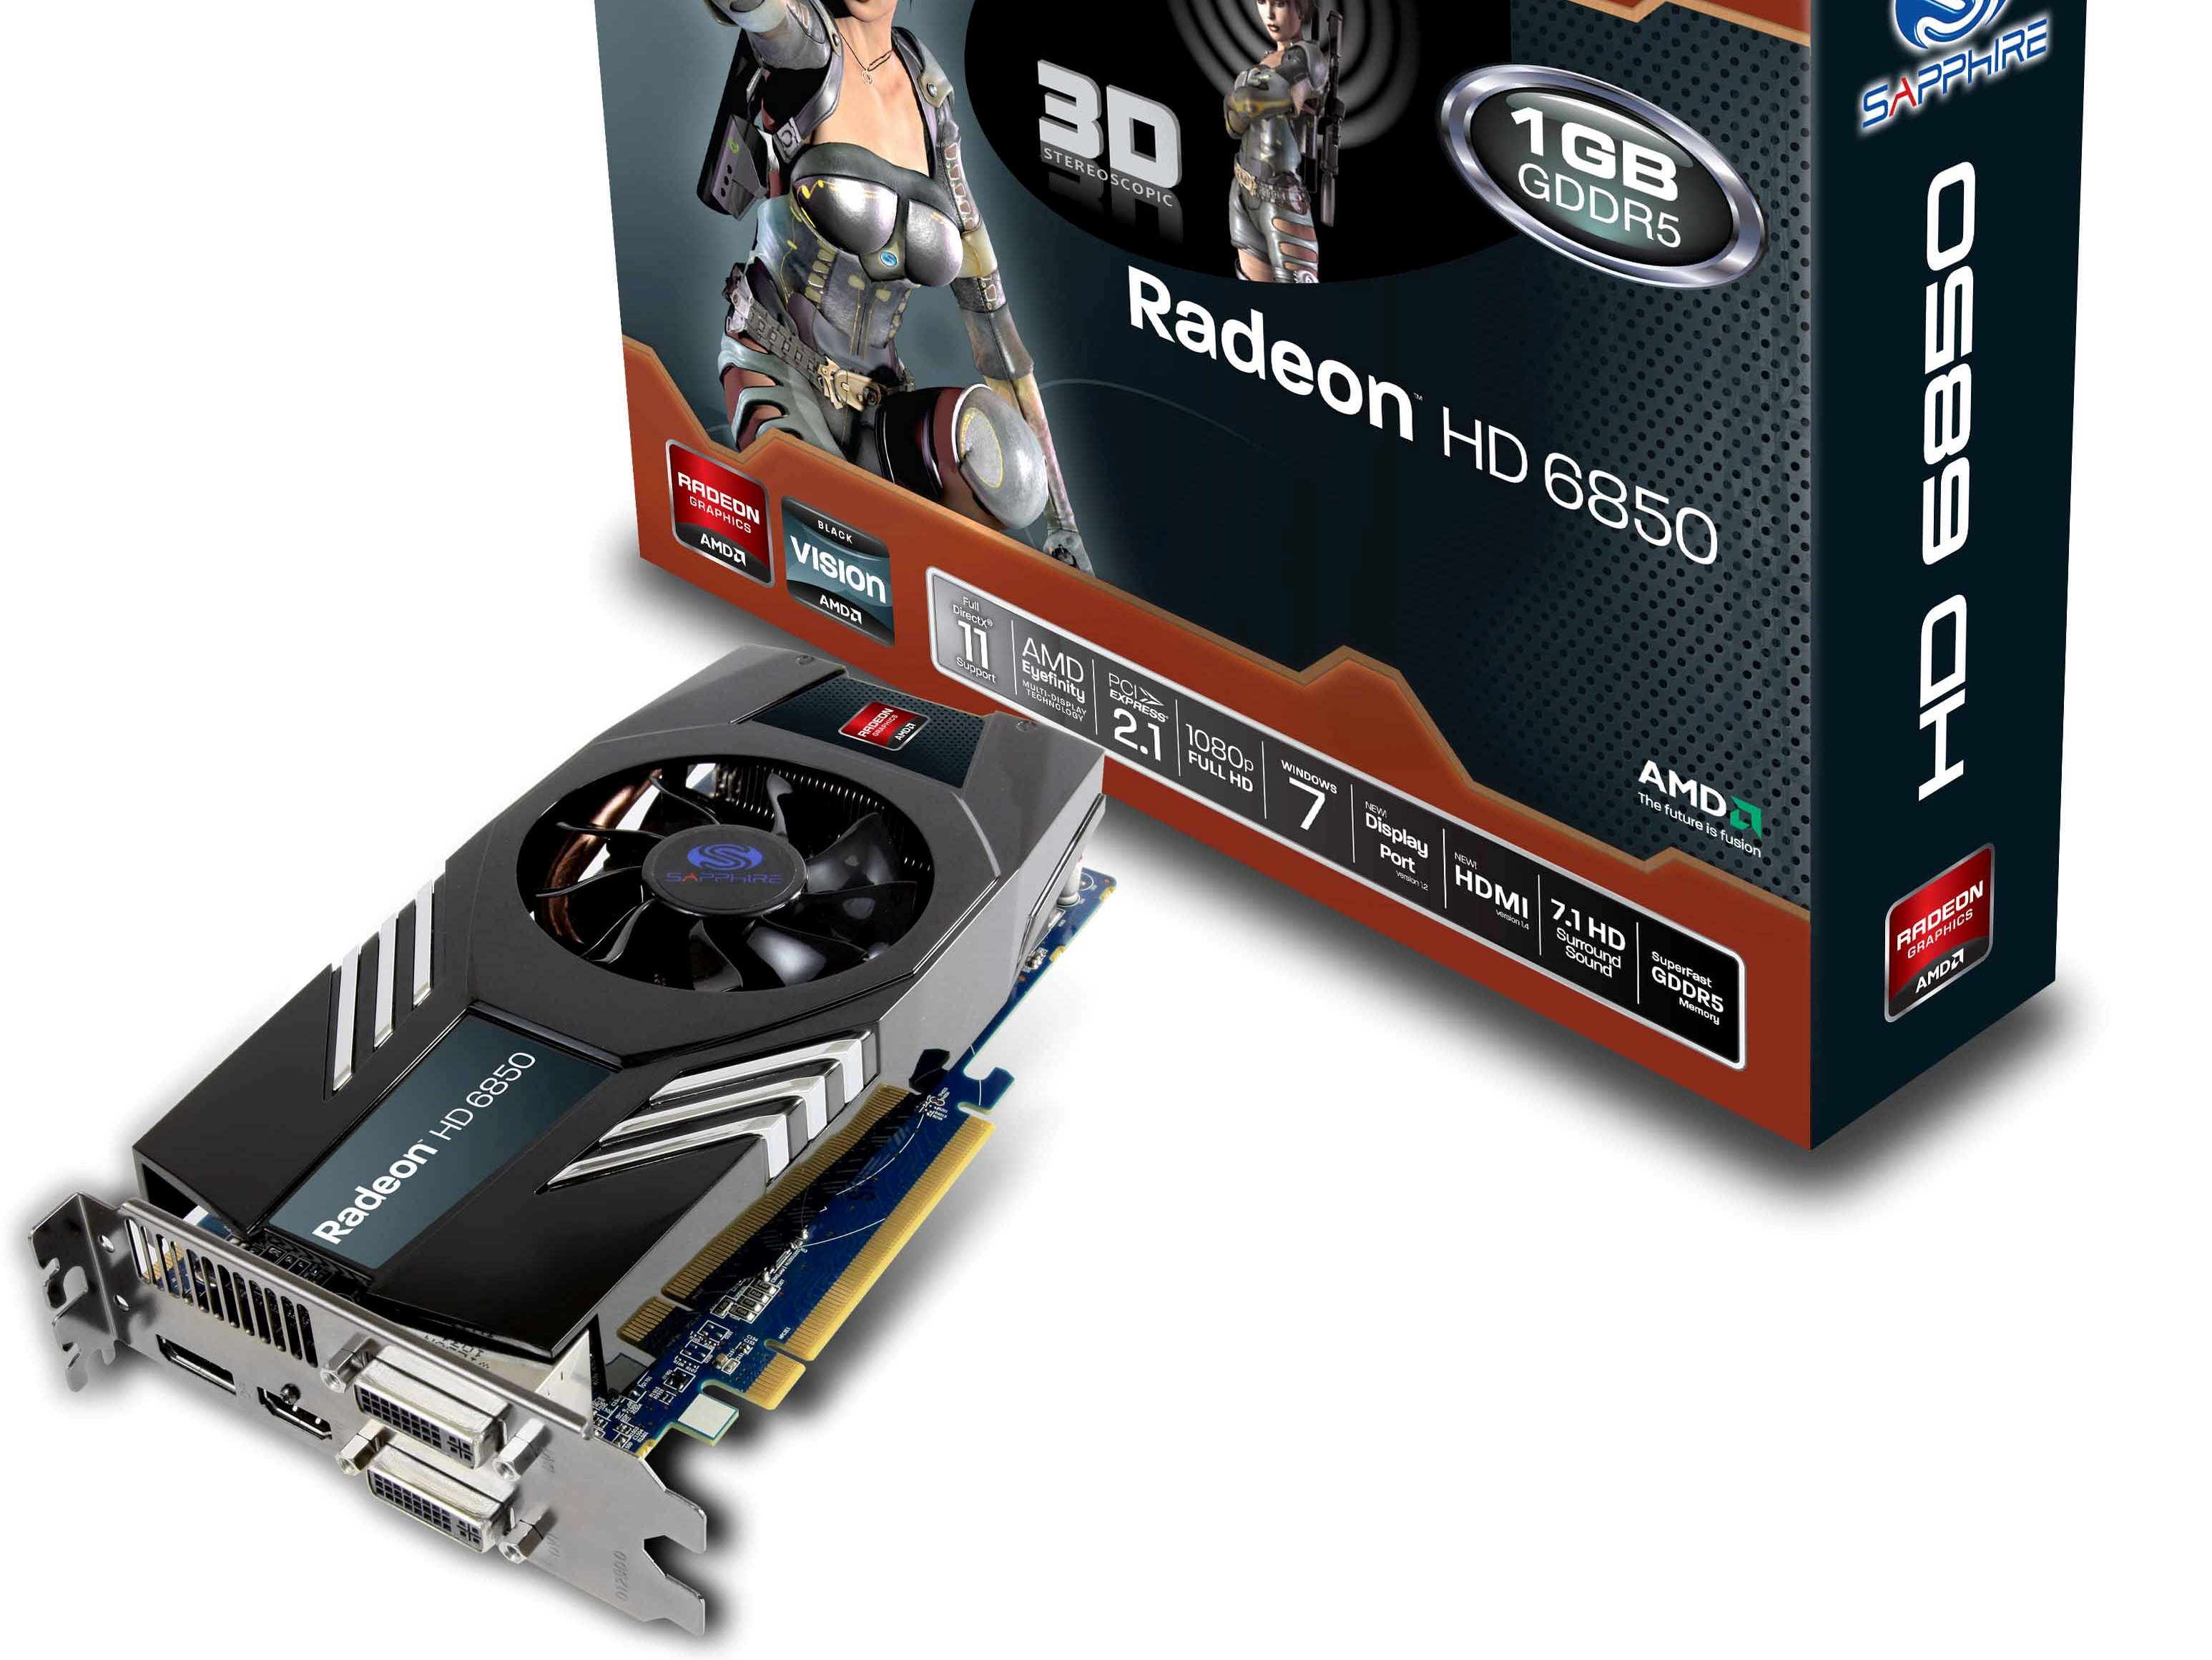 Video card. Should I take the video card nvidia Geforce gt 430 1gb